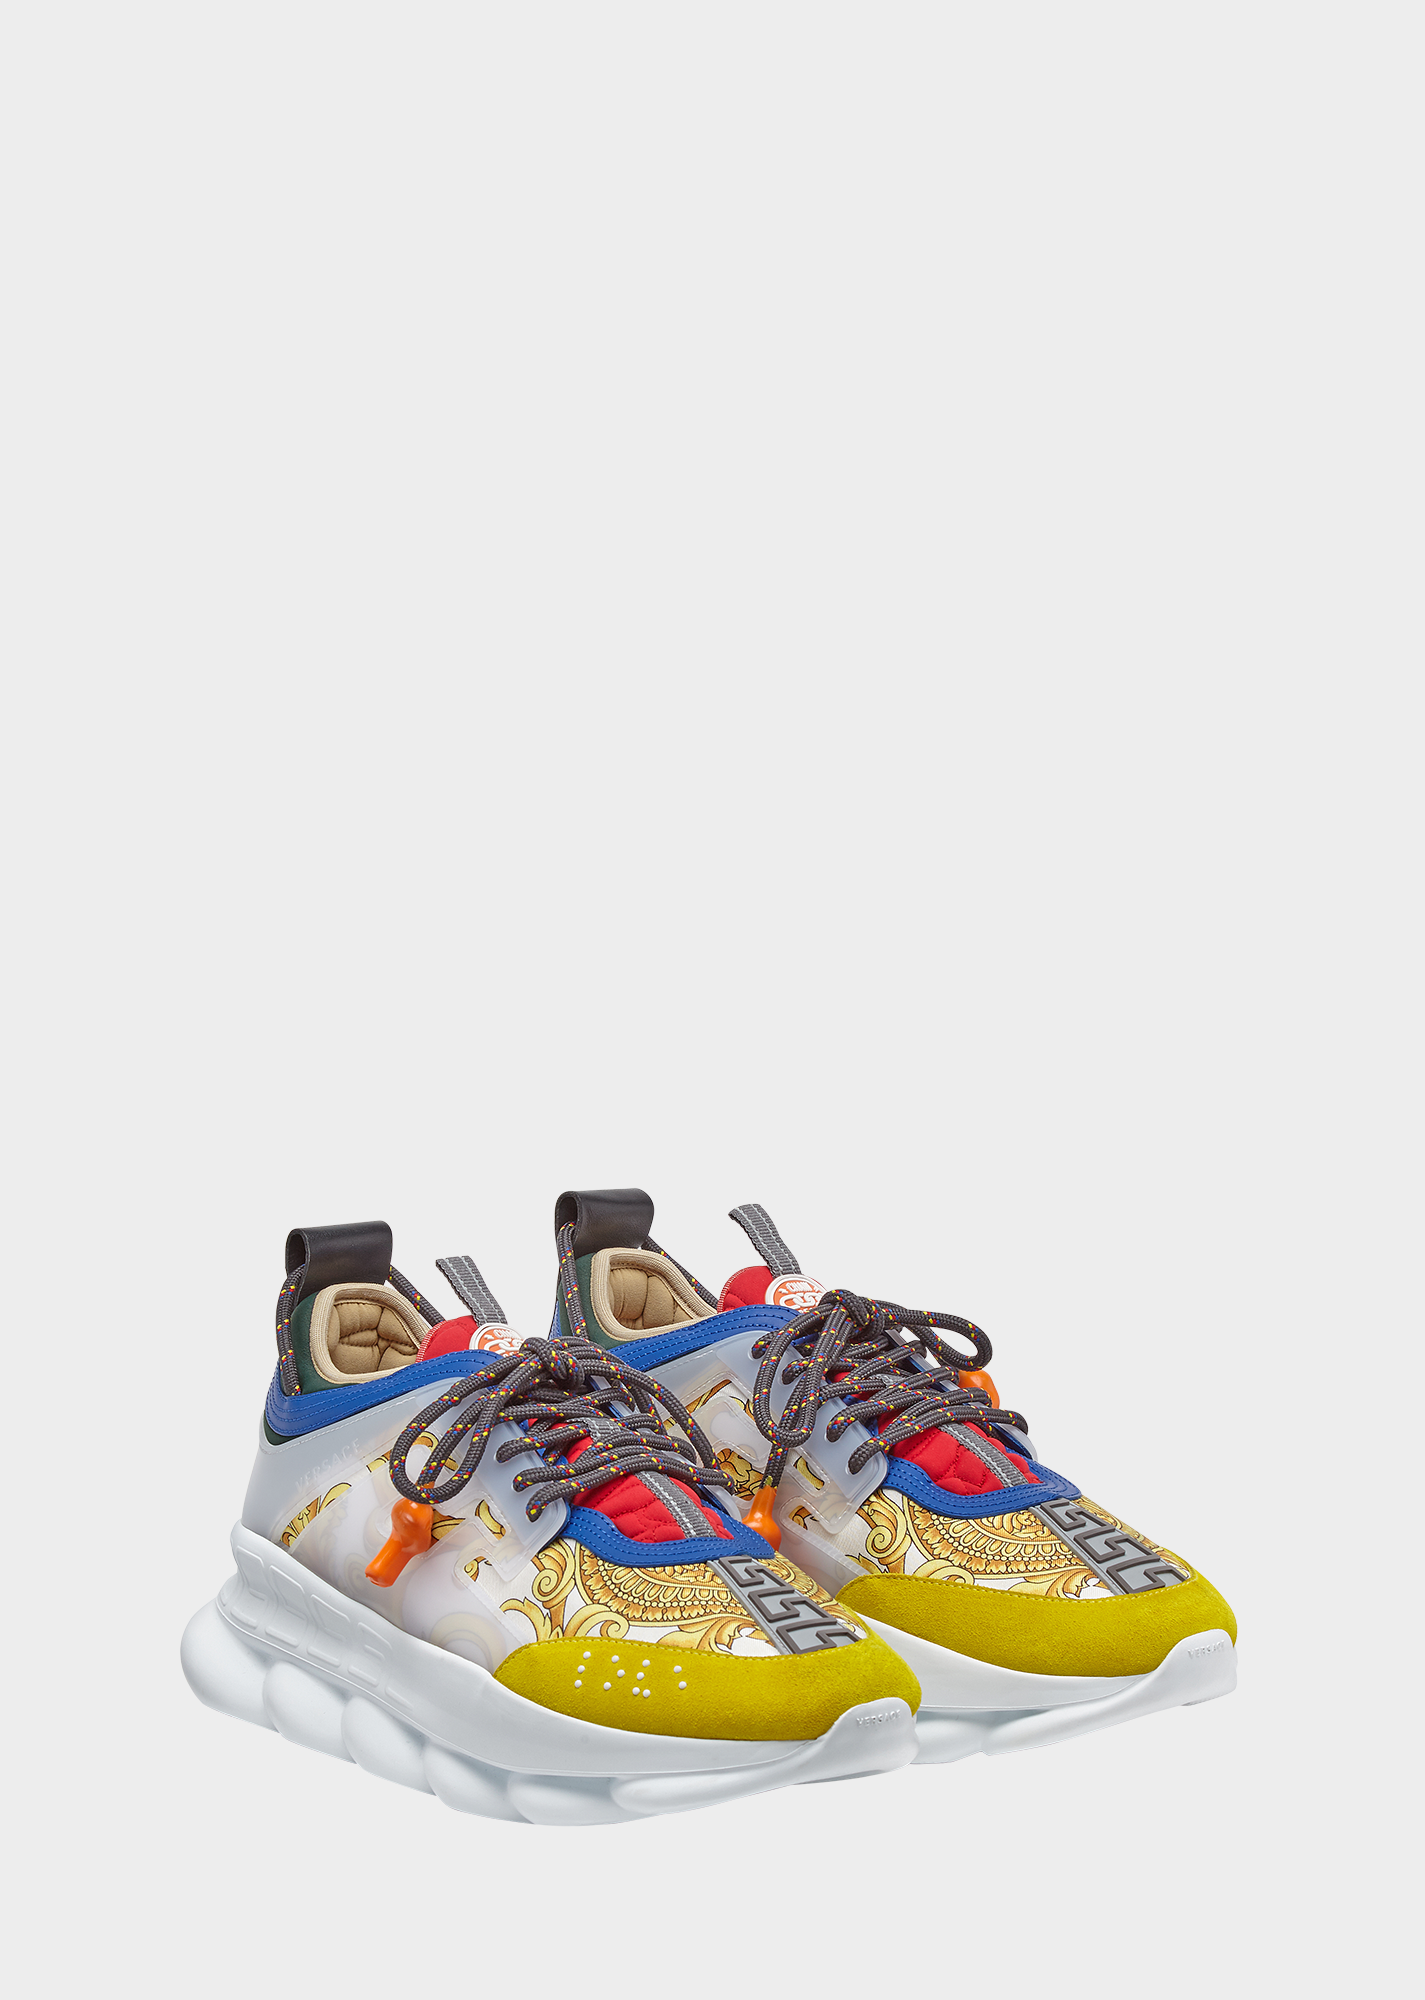 8b3b0eac24 VERSACE Chain Reaction Sneakers. #versace #shoes | Versace in 2019 ...